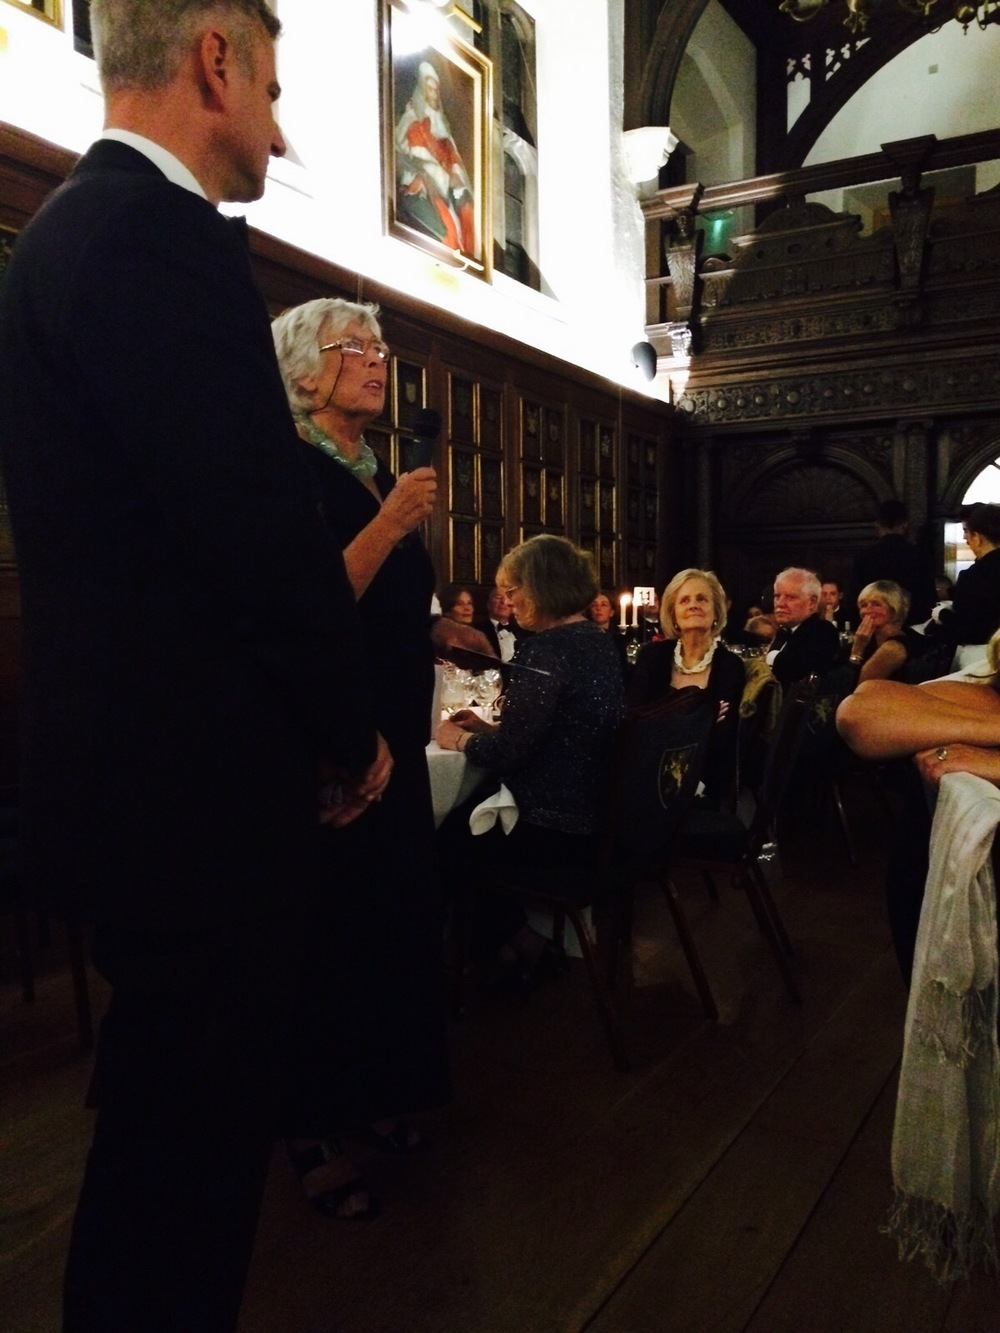 Auctioneer with SOS!SEN founder Marion Strudwick at the historical site of The Honourable Society of Gray's Inn.